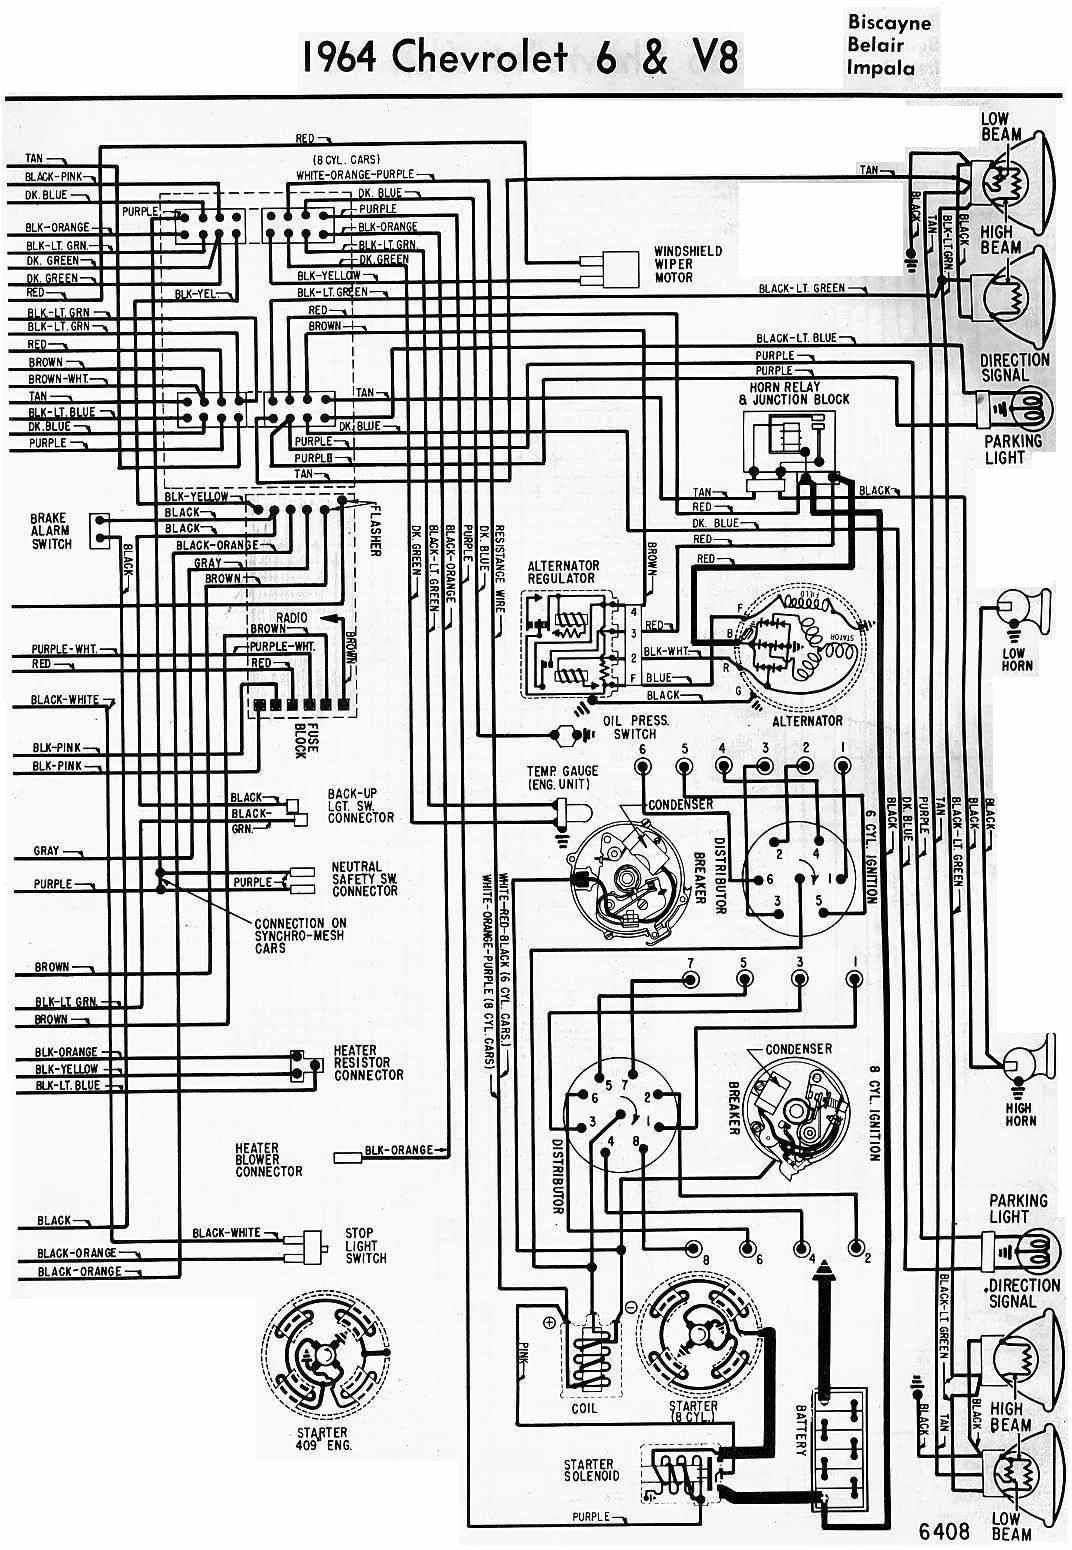 1963 chevy impala ignition wiring for wiring diagram 1963 impala electrical diagram  [ 1072 x 1550 Pixel ]